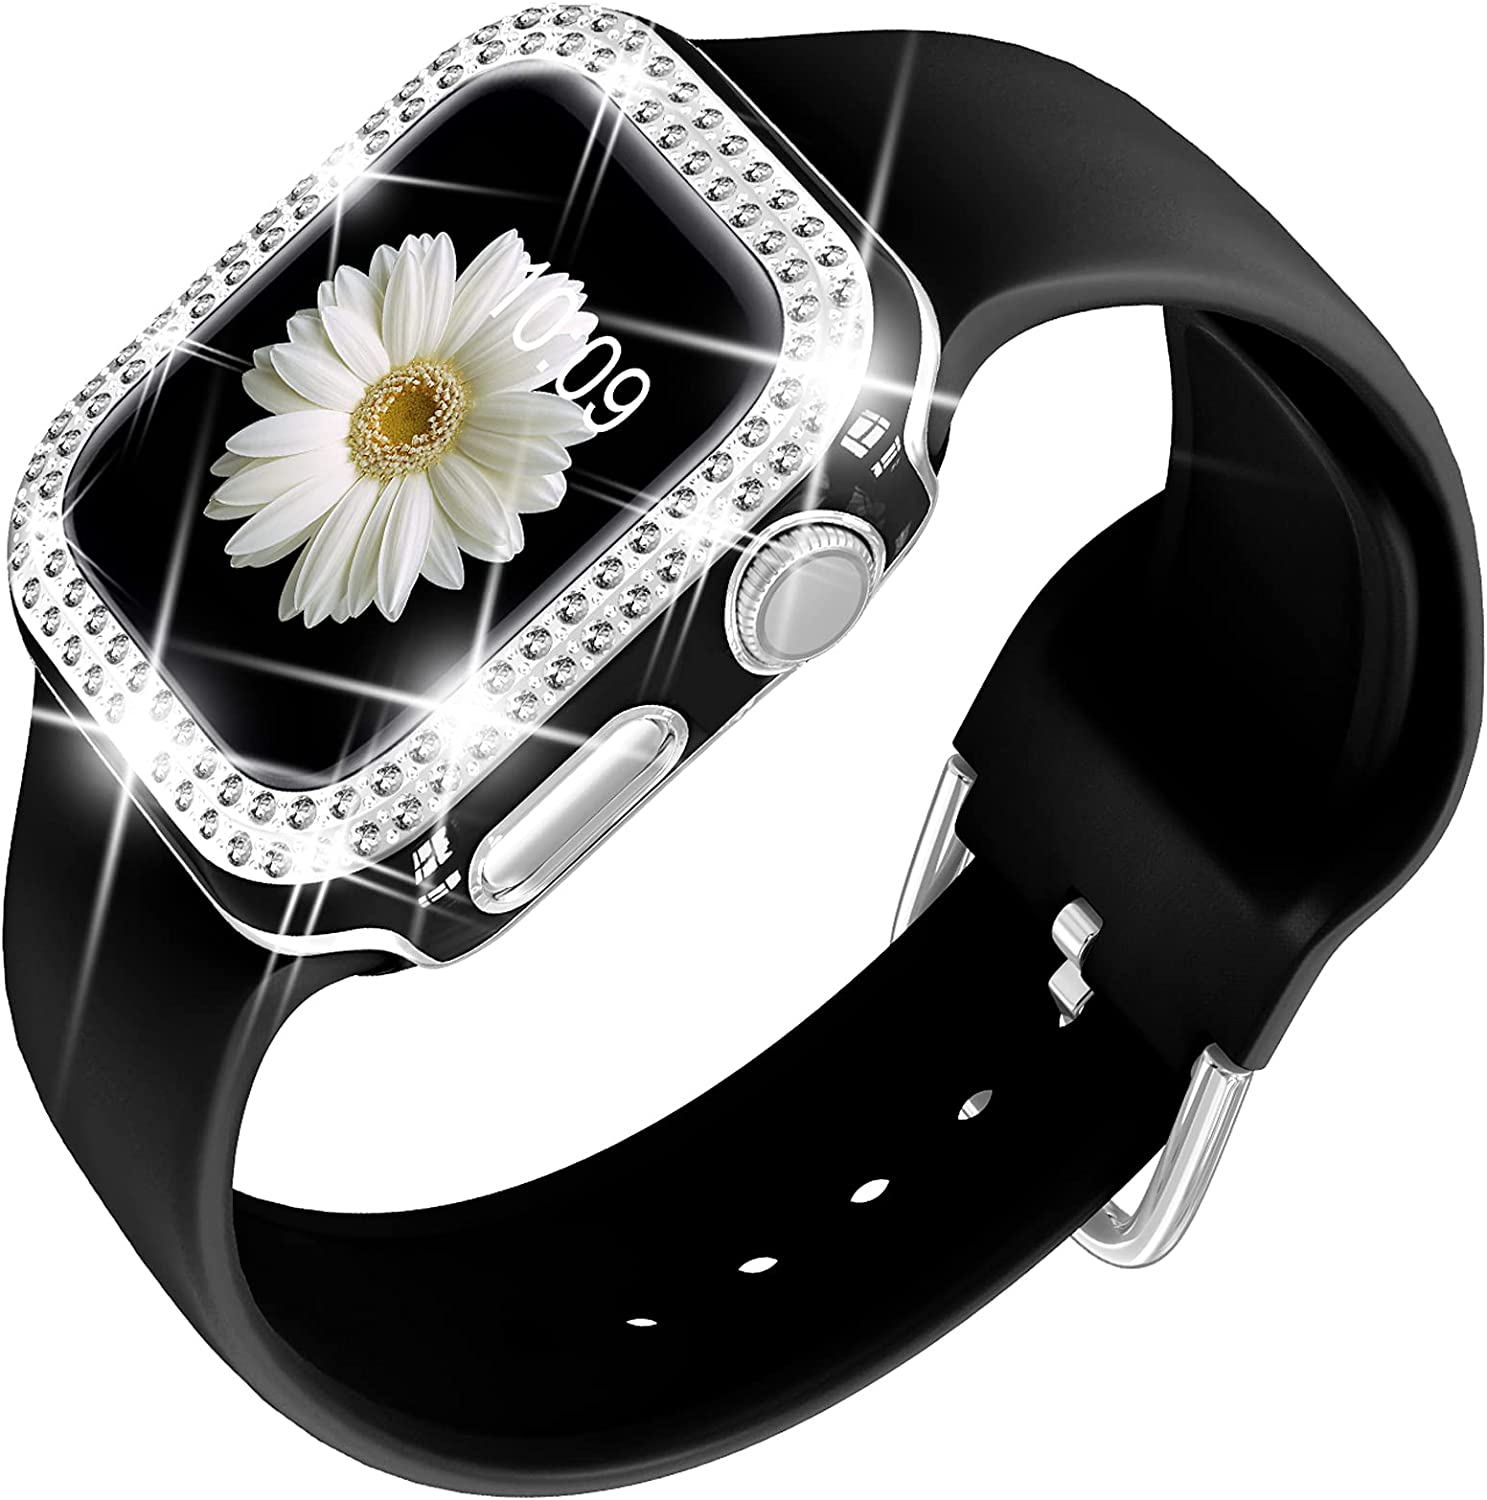 DABAOZA Compatible for Apple Watch 38mm 42mm Band with Glitter Bumper Case, Women Silicone Soft Comfortable Adjustable Strap with Buckle for iWatch Series 3/2/1